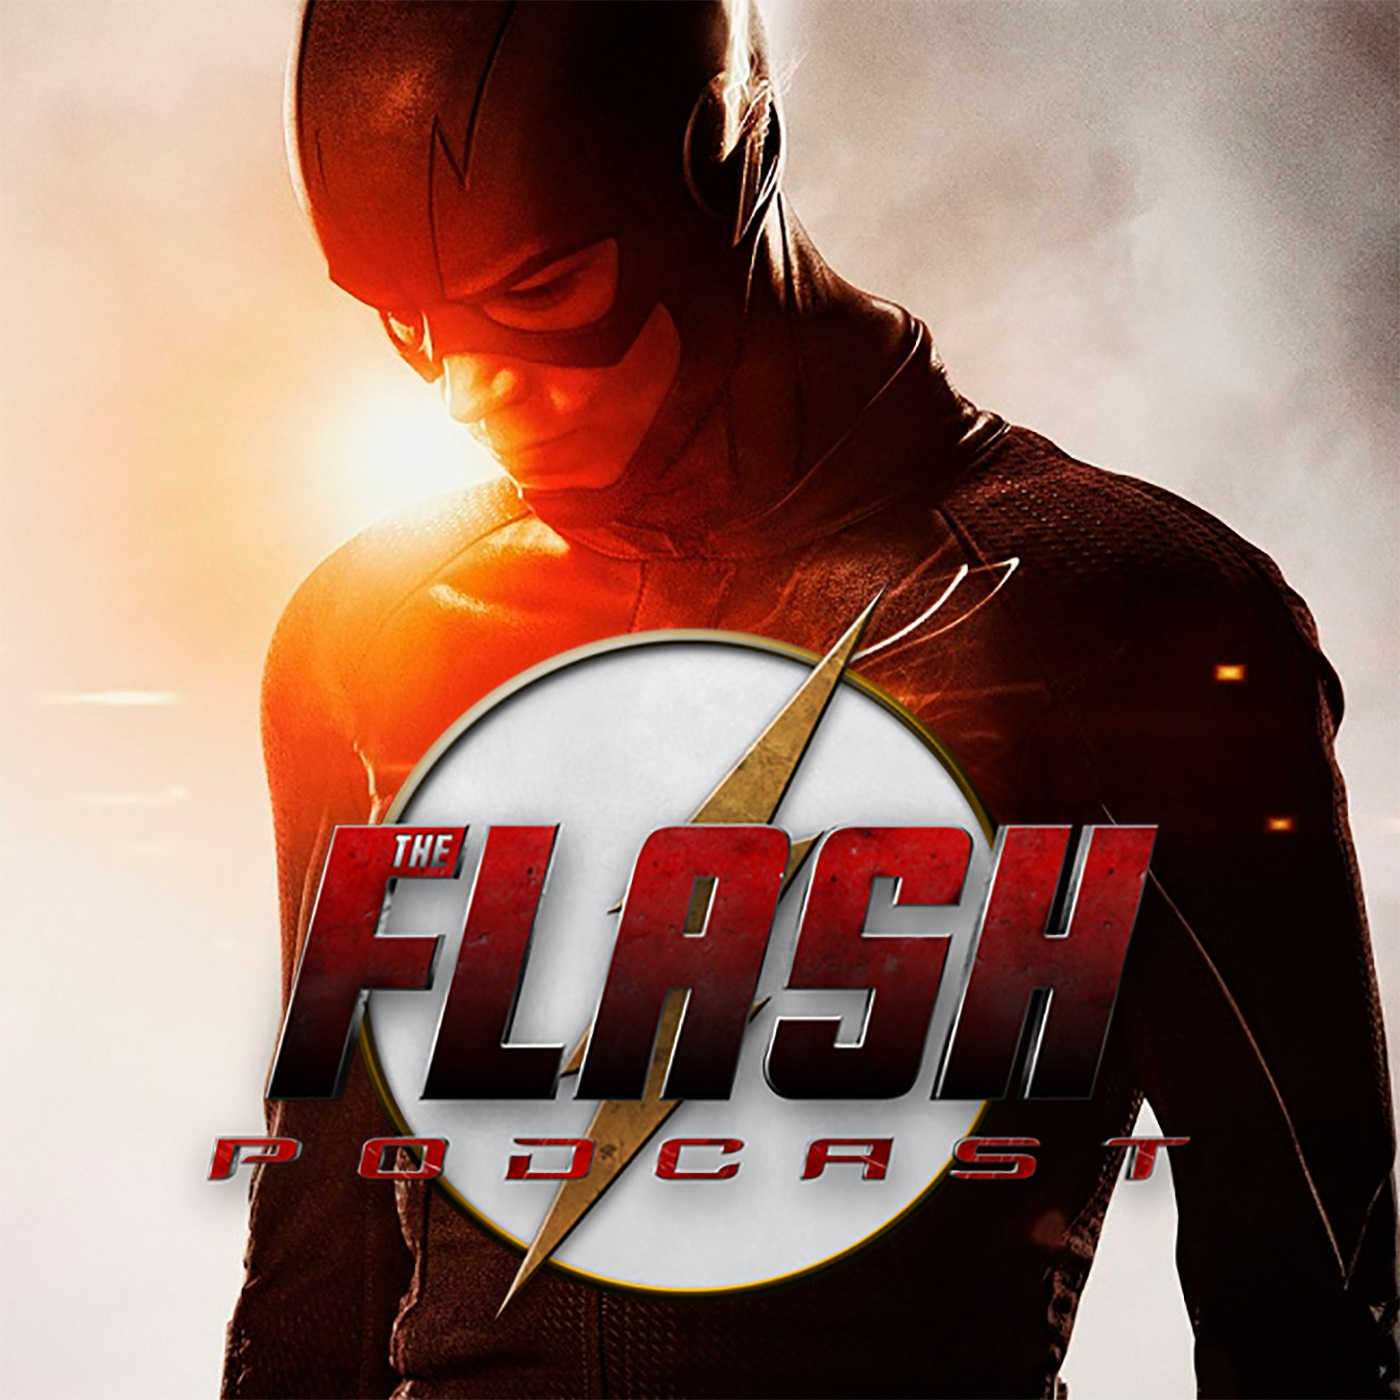 The Flash Podcast Season 2.5 - Episode 3: Jesse Quick & Wally West In Season 2